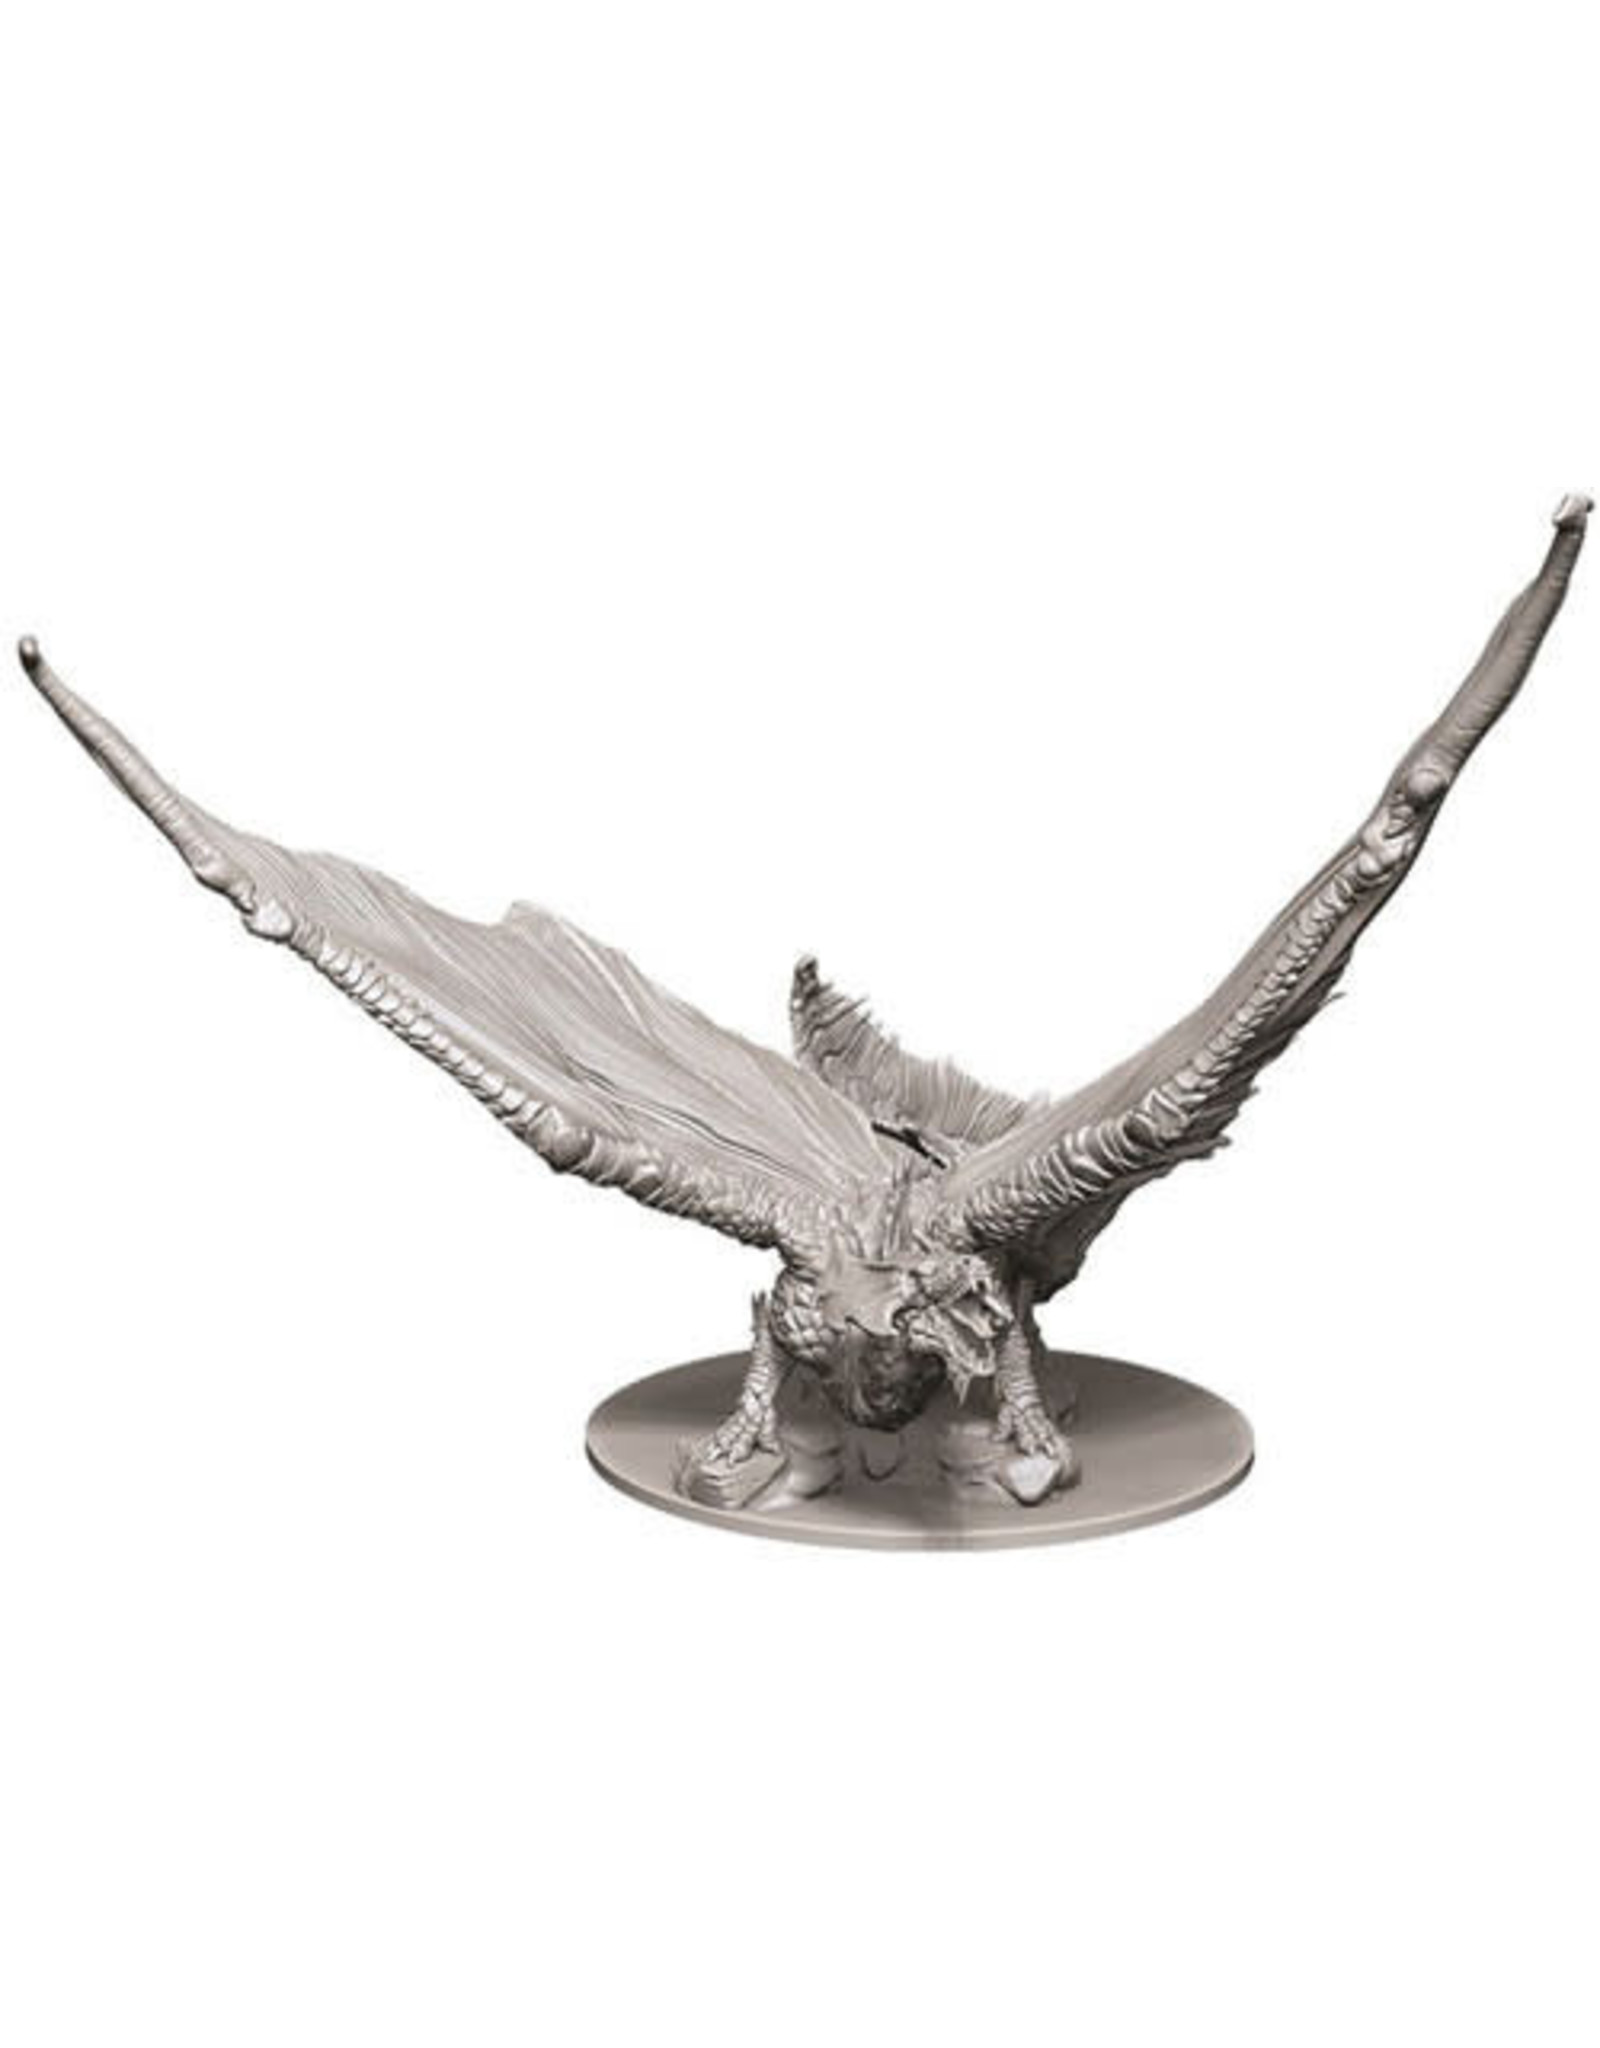 D&D Unpainted Minis: Young Brass Dragon (Wave 9)